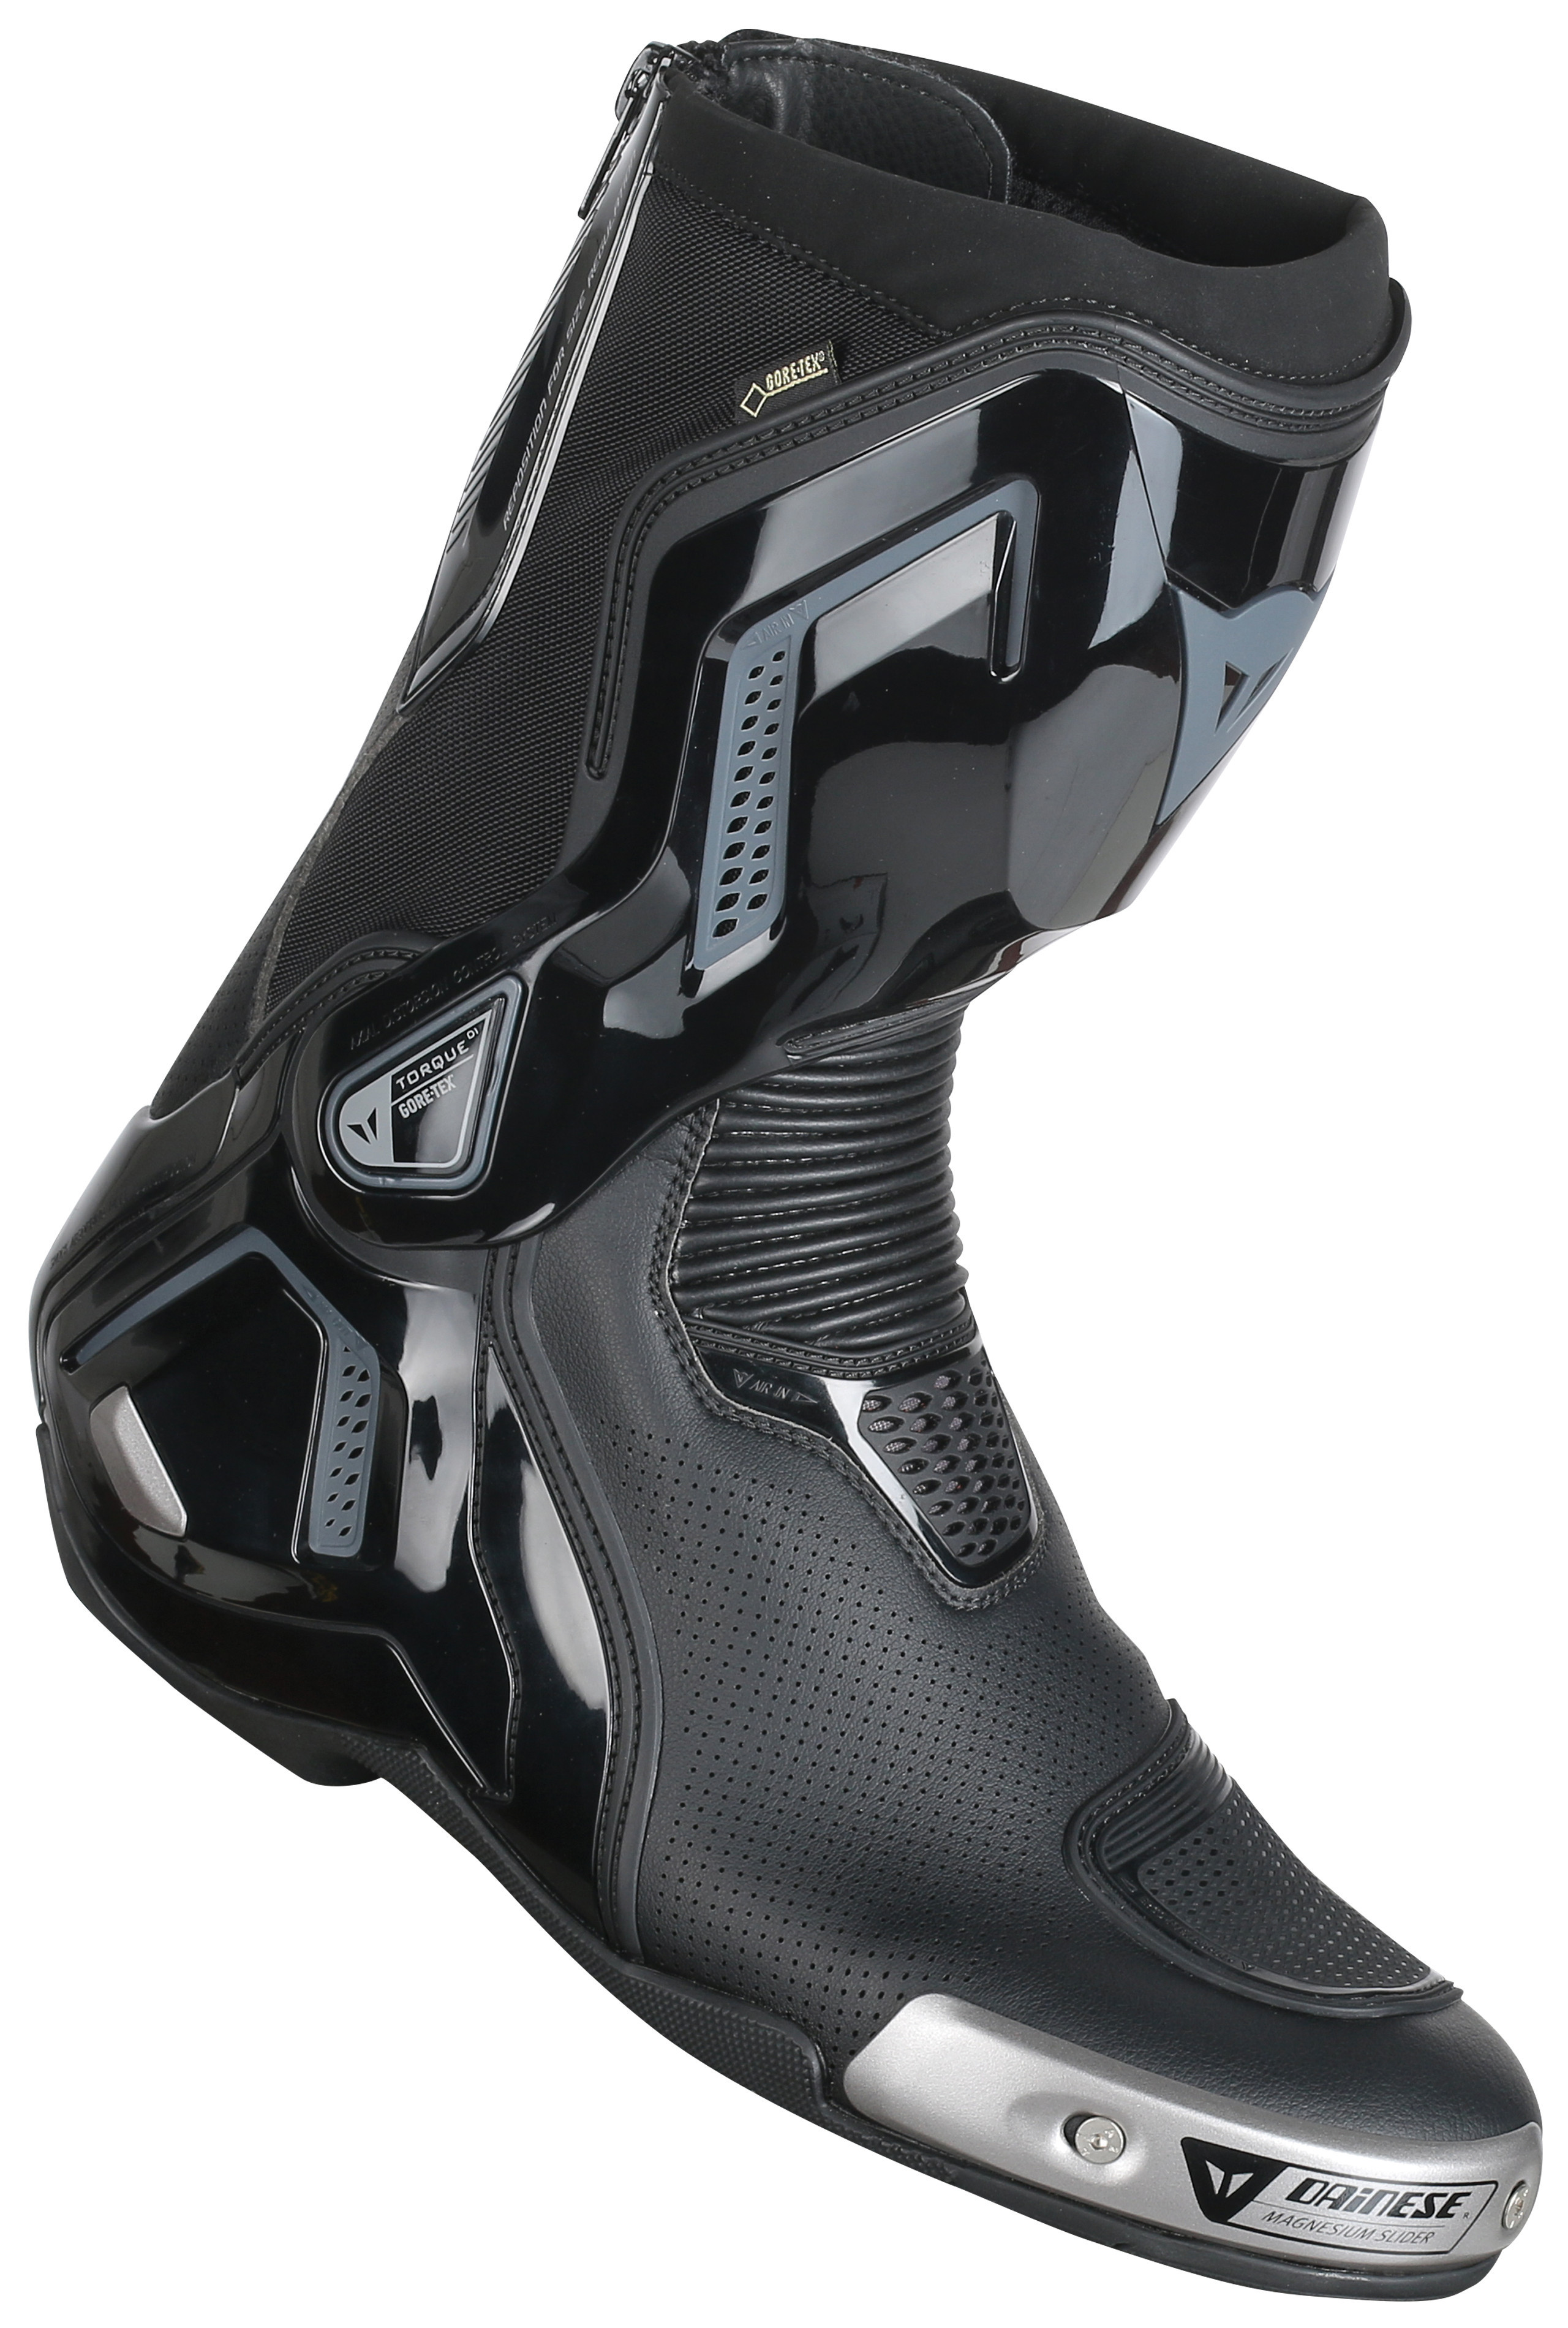 dainese torque out d1 boots cycle gear. Black Bedroom Furniture Sets. Home Design Ideas